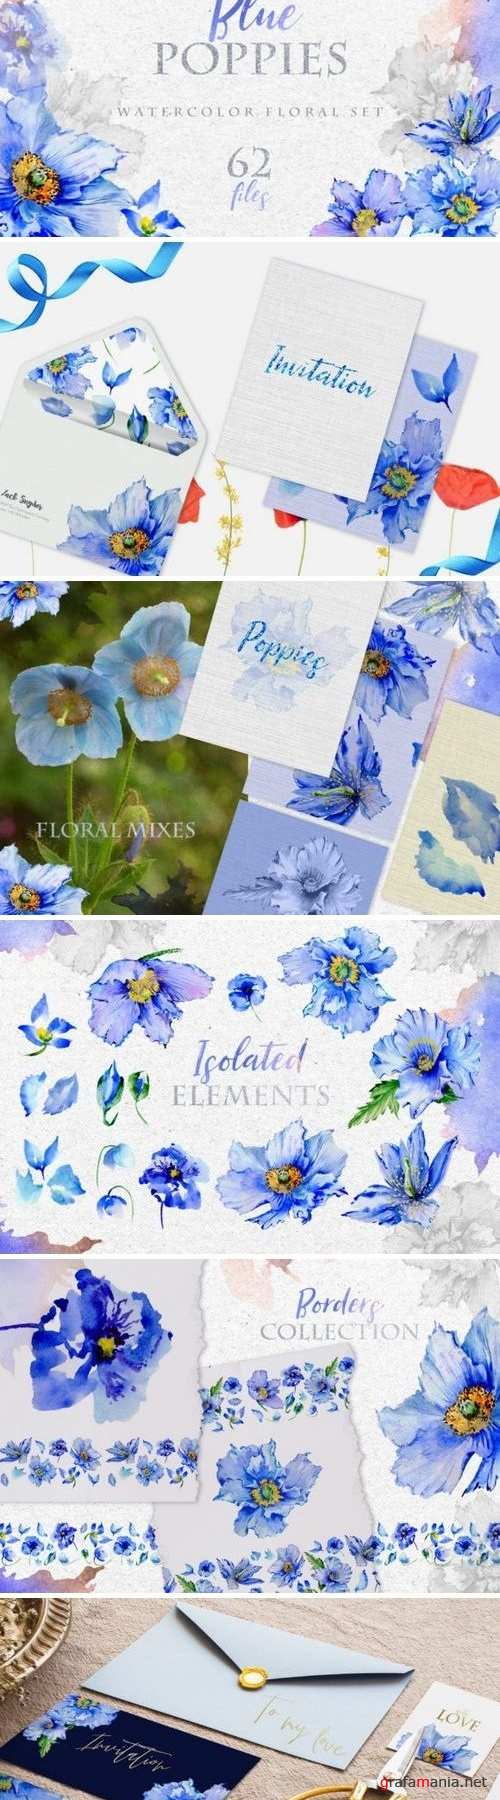 Blue Poppies Watercolor png 3319870